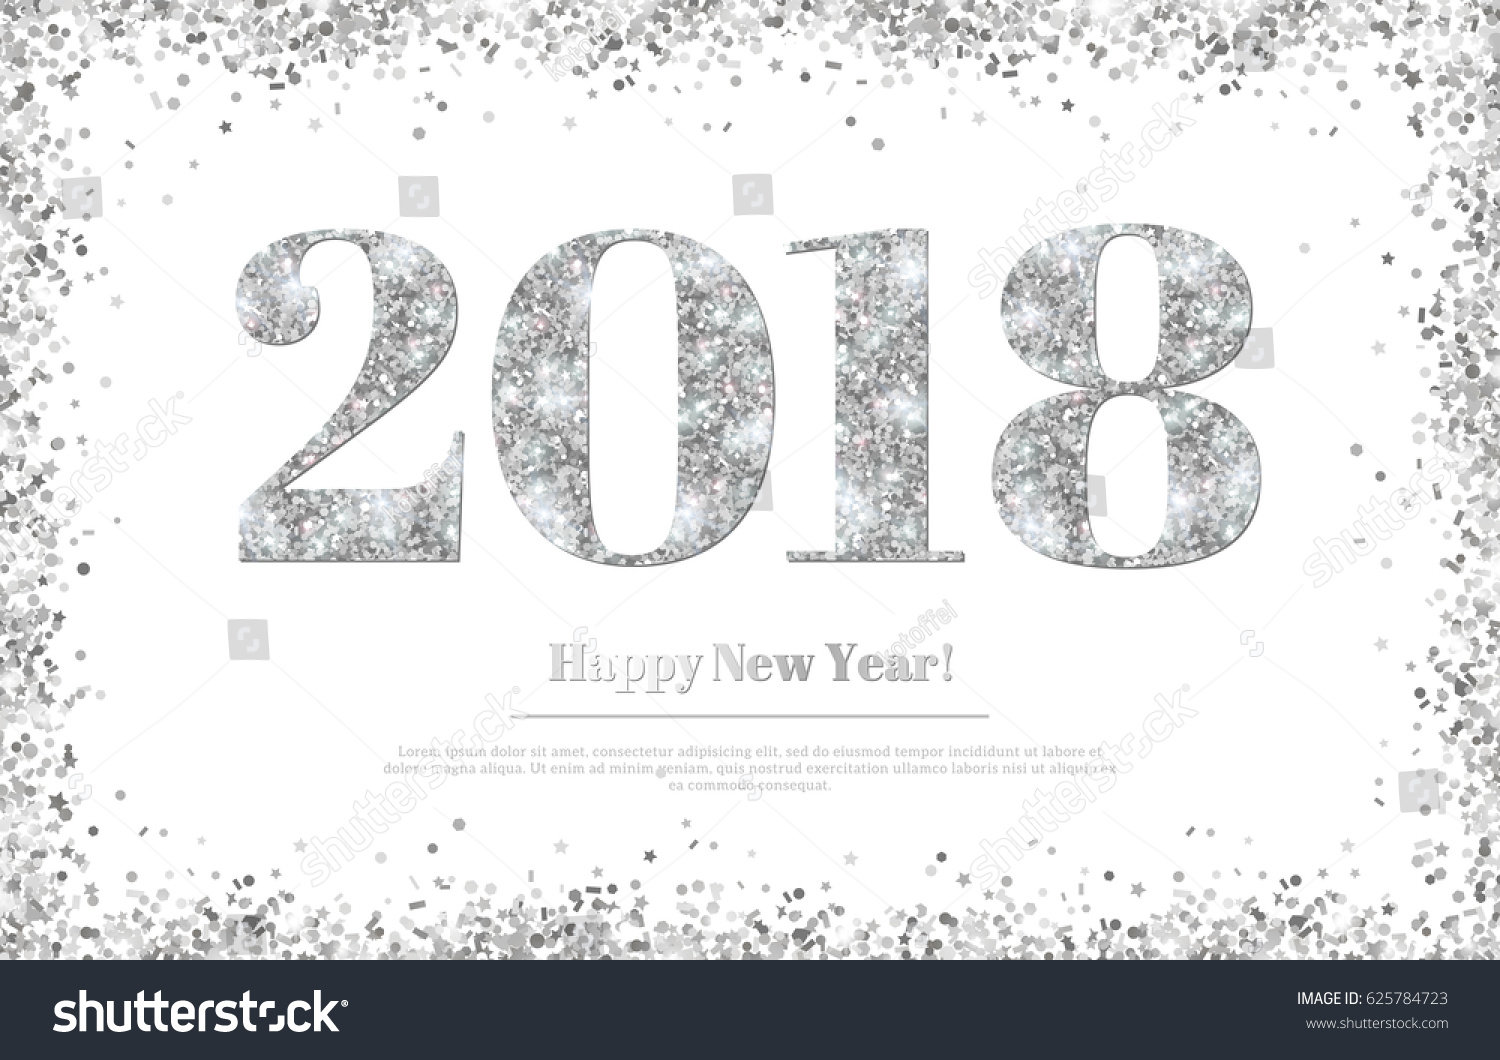 happy new year 2018 greeting card with silver numbers on white background vector illustration